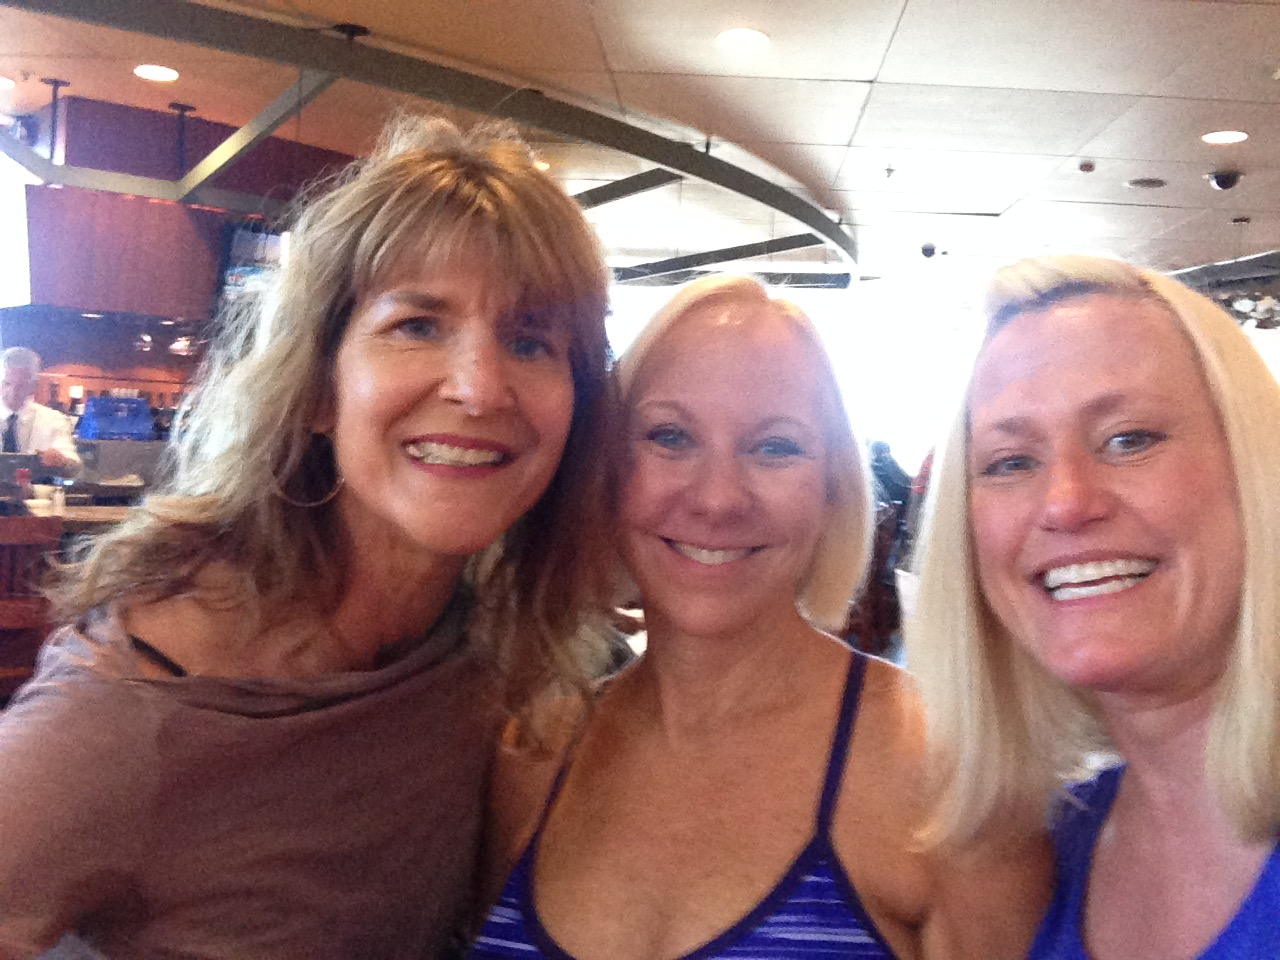 Look who found us at the airport! April, Jane, and Sandy together again!